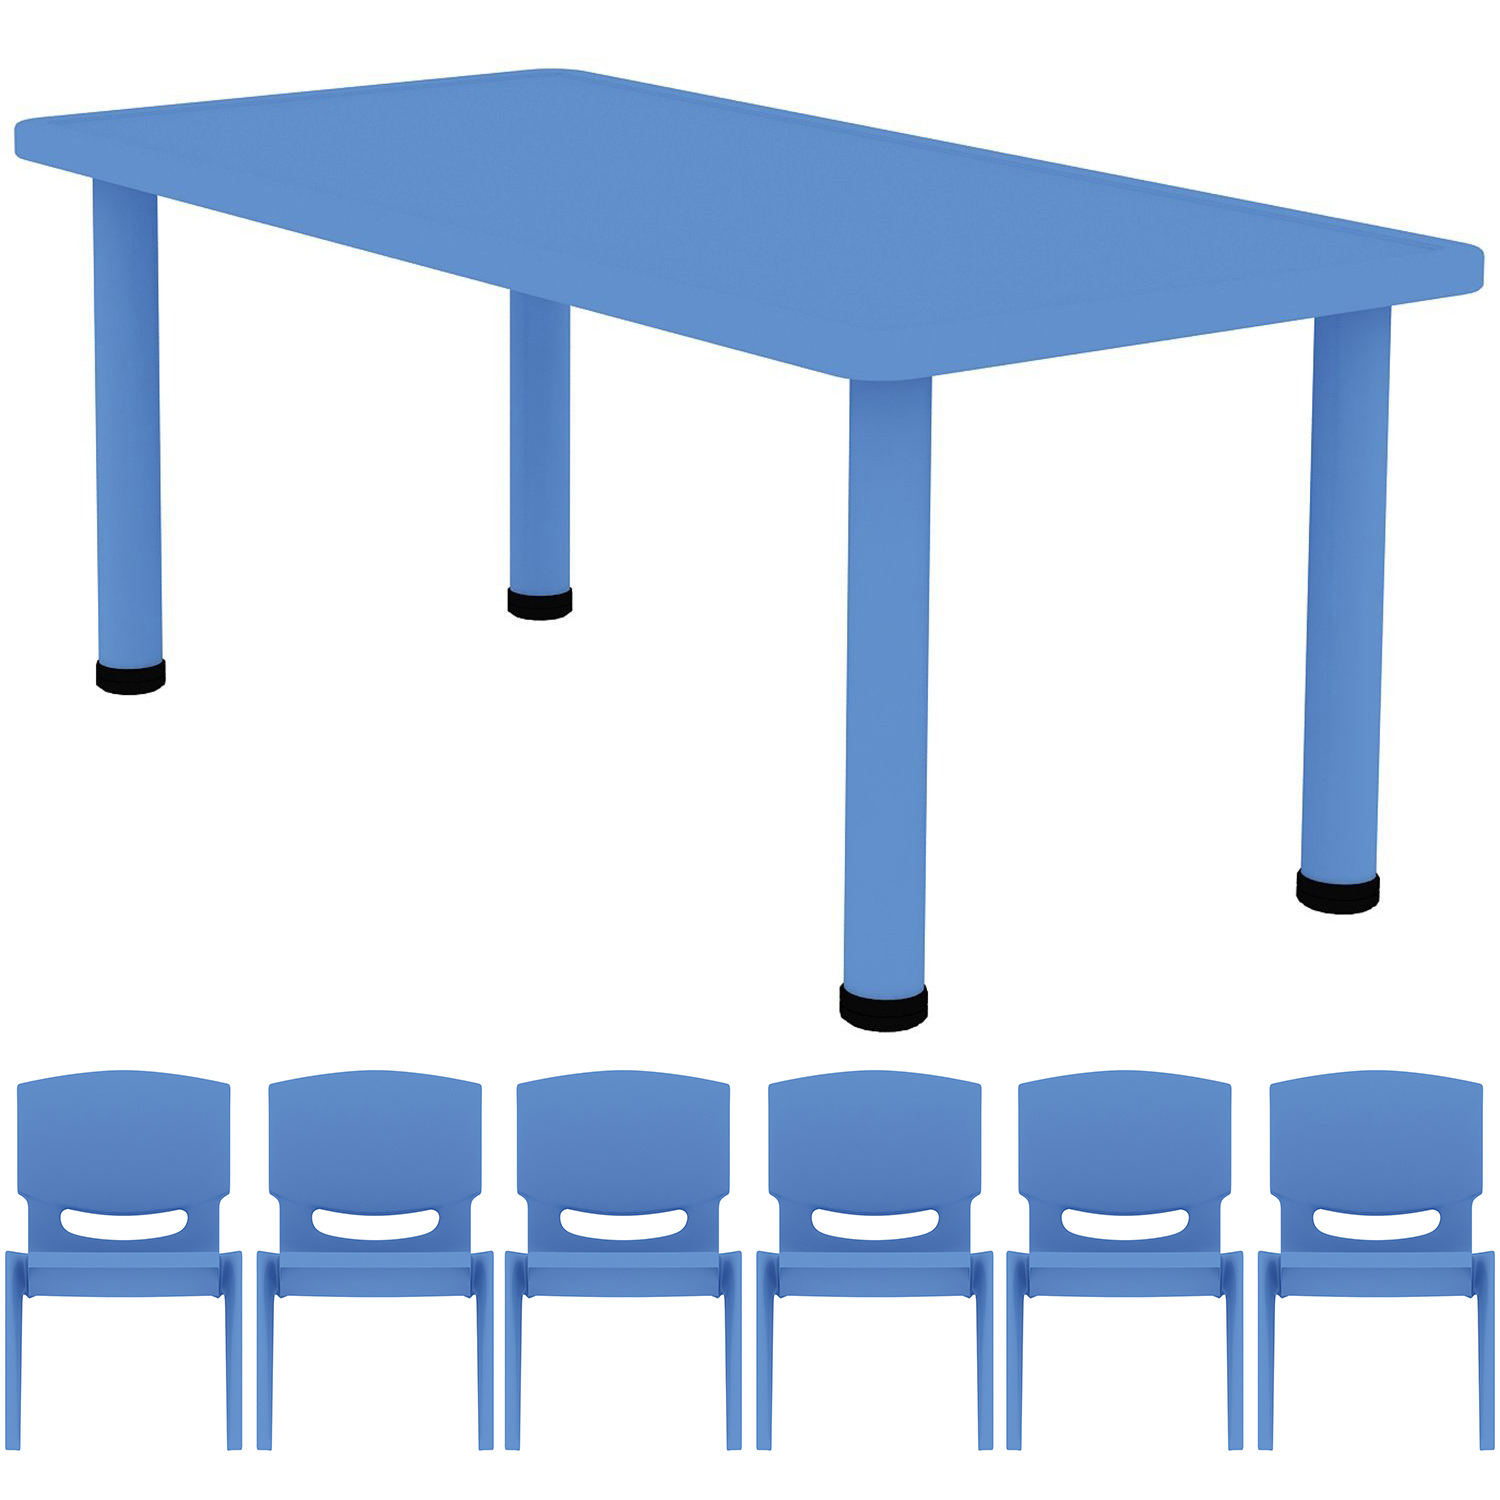 Astounding 2Xhome Blue Kids Table And Chair Set Adjustable Leg Strong Wide Activity Table School Table Child Bright Color Table Preschool With 6 Stackable Camellatalisay Diy Chair Ideas Camellatalisaycom